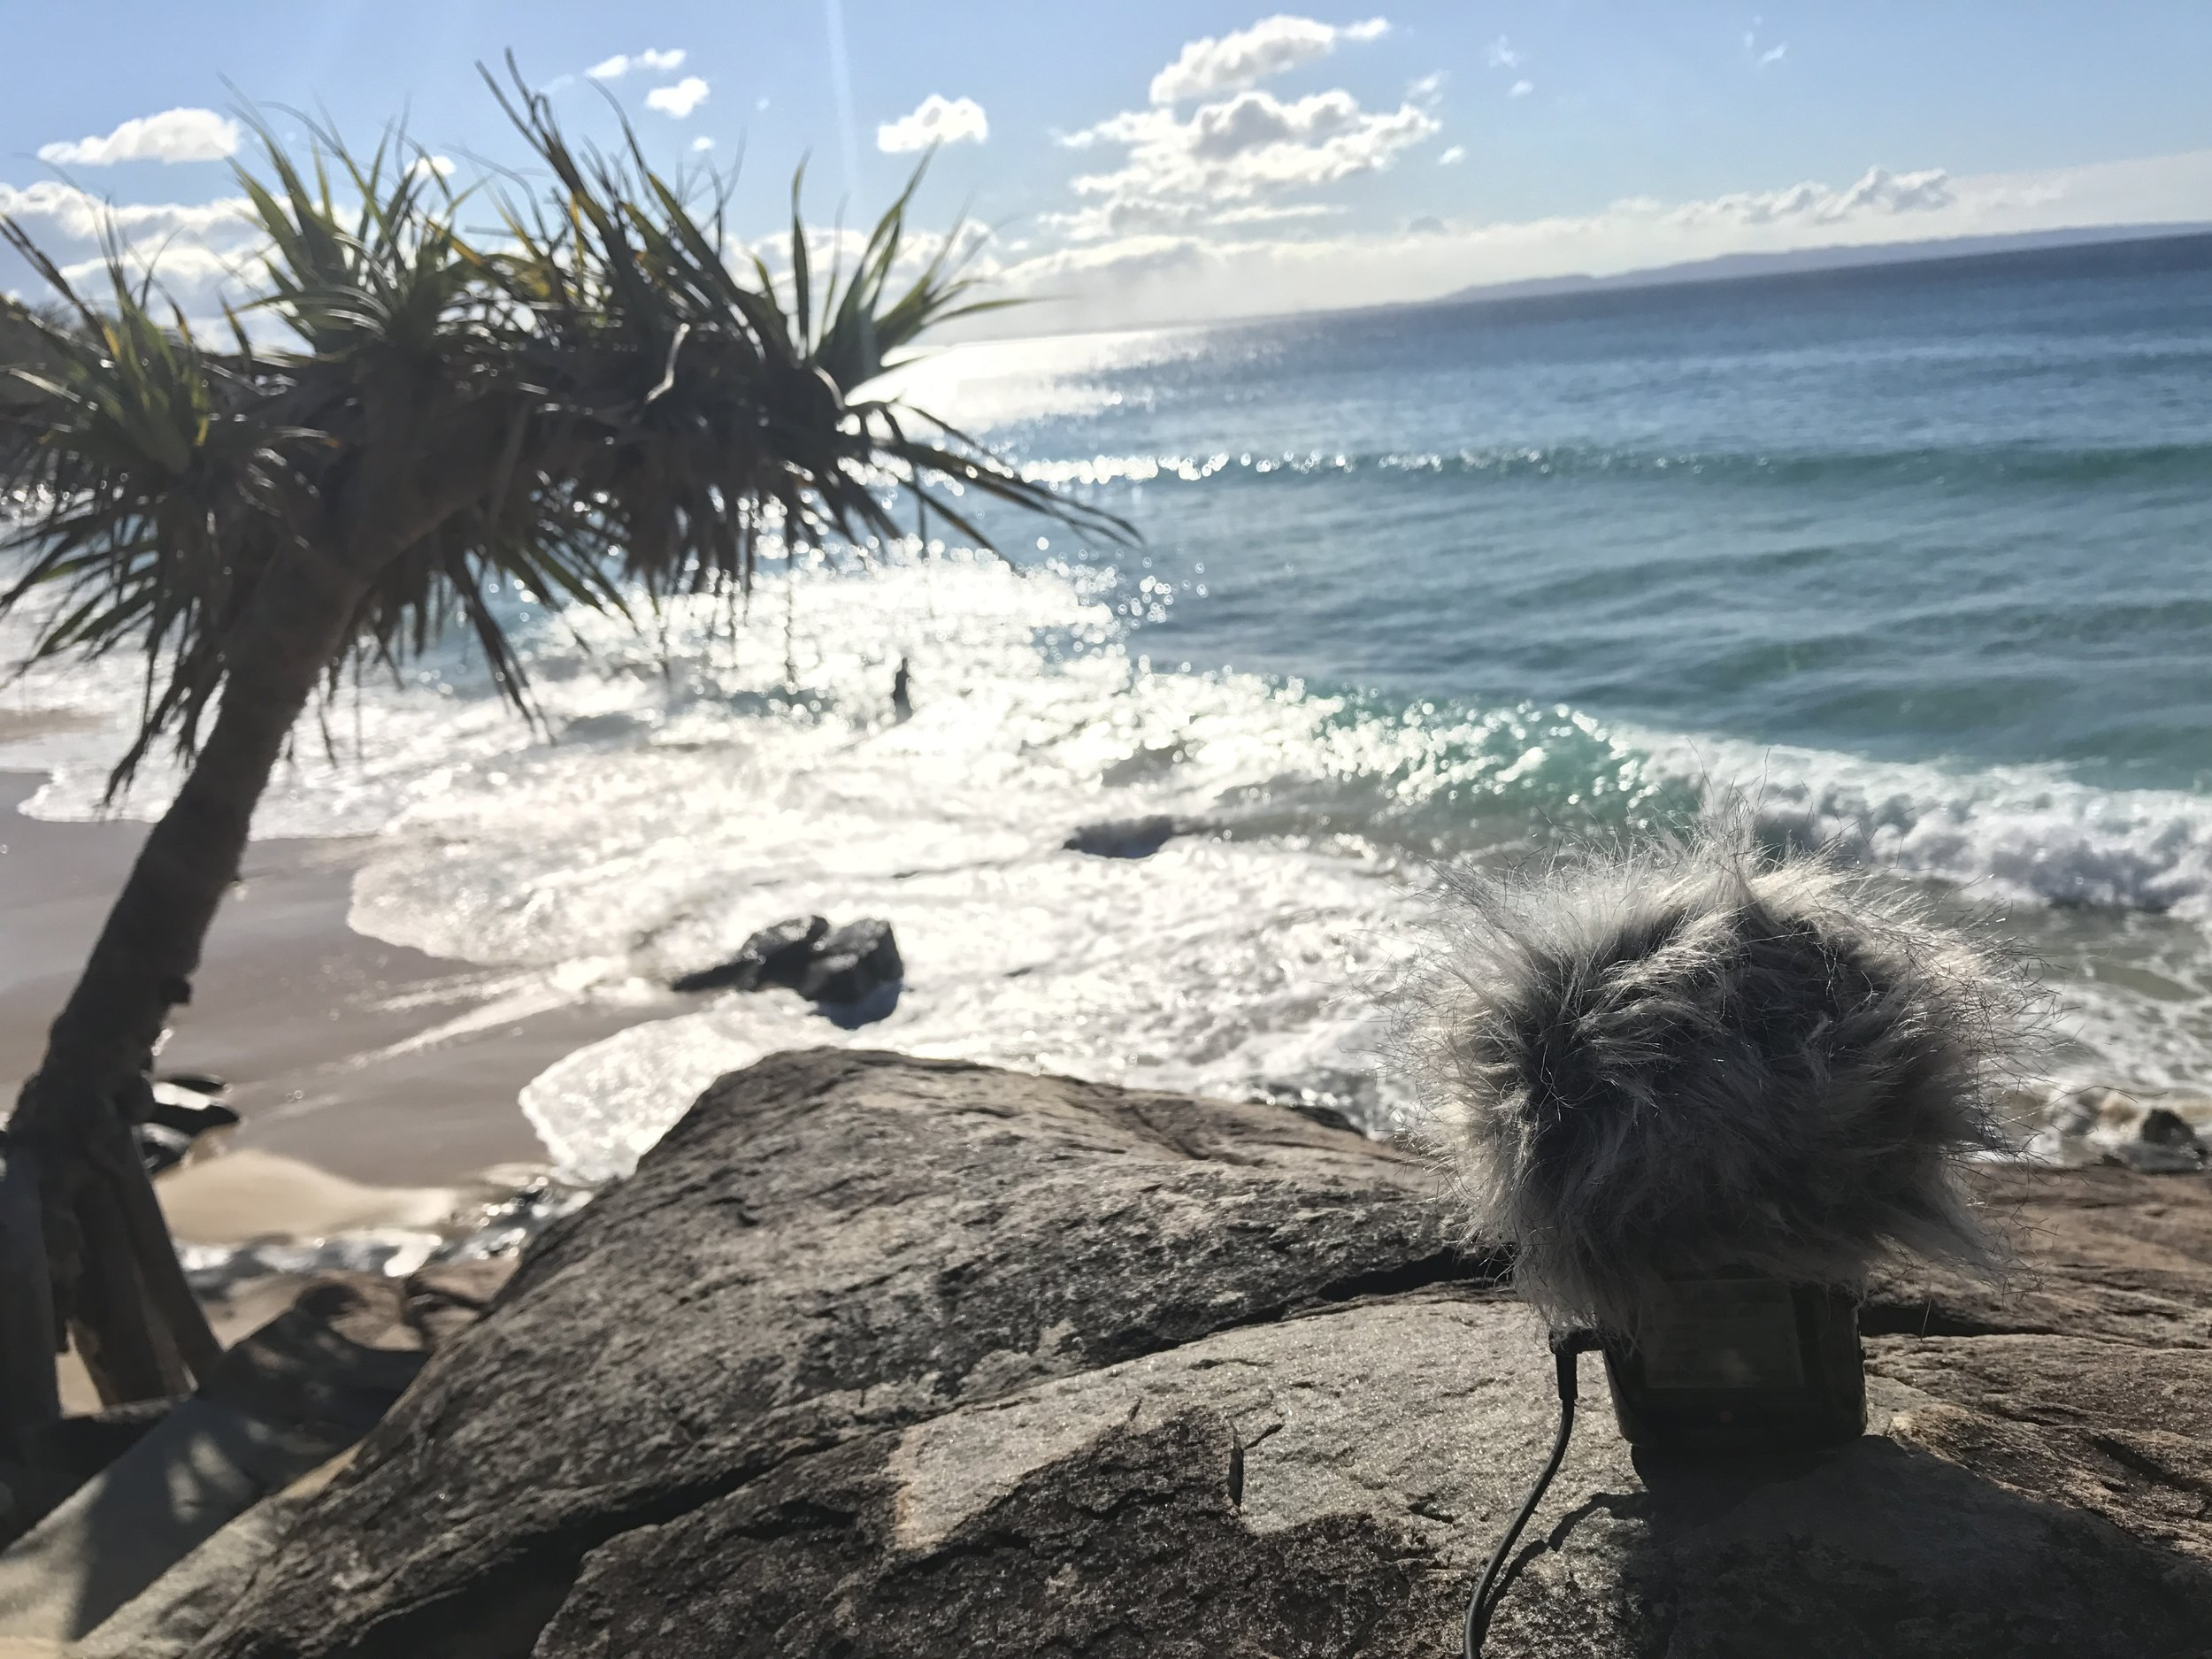 Quick wave atmos recording in Noosa with Zoom H2n in it's Ambisonic mode